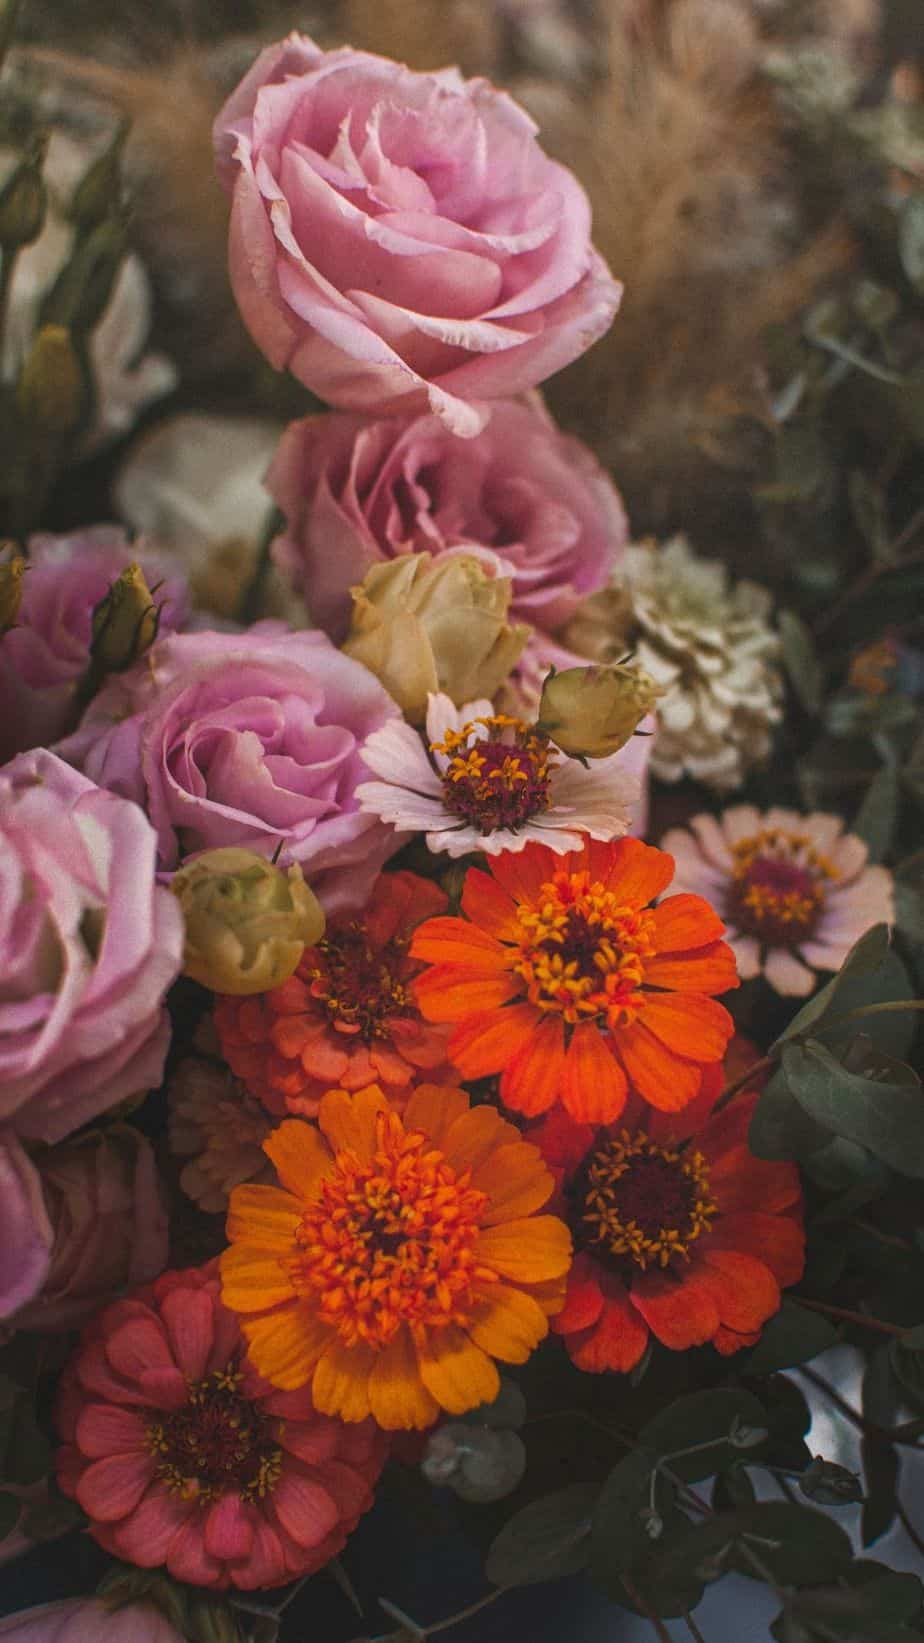 Fall Flowers Wallpaper.You can always make your iPhone look aesthetic with cute wallpapers, these 40 beautiful and aesthetic autumn fall wallpapers for your iPhone will make you feel that autumnal fall vibes.